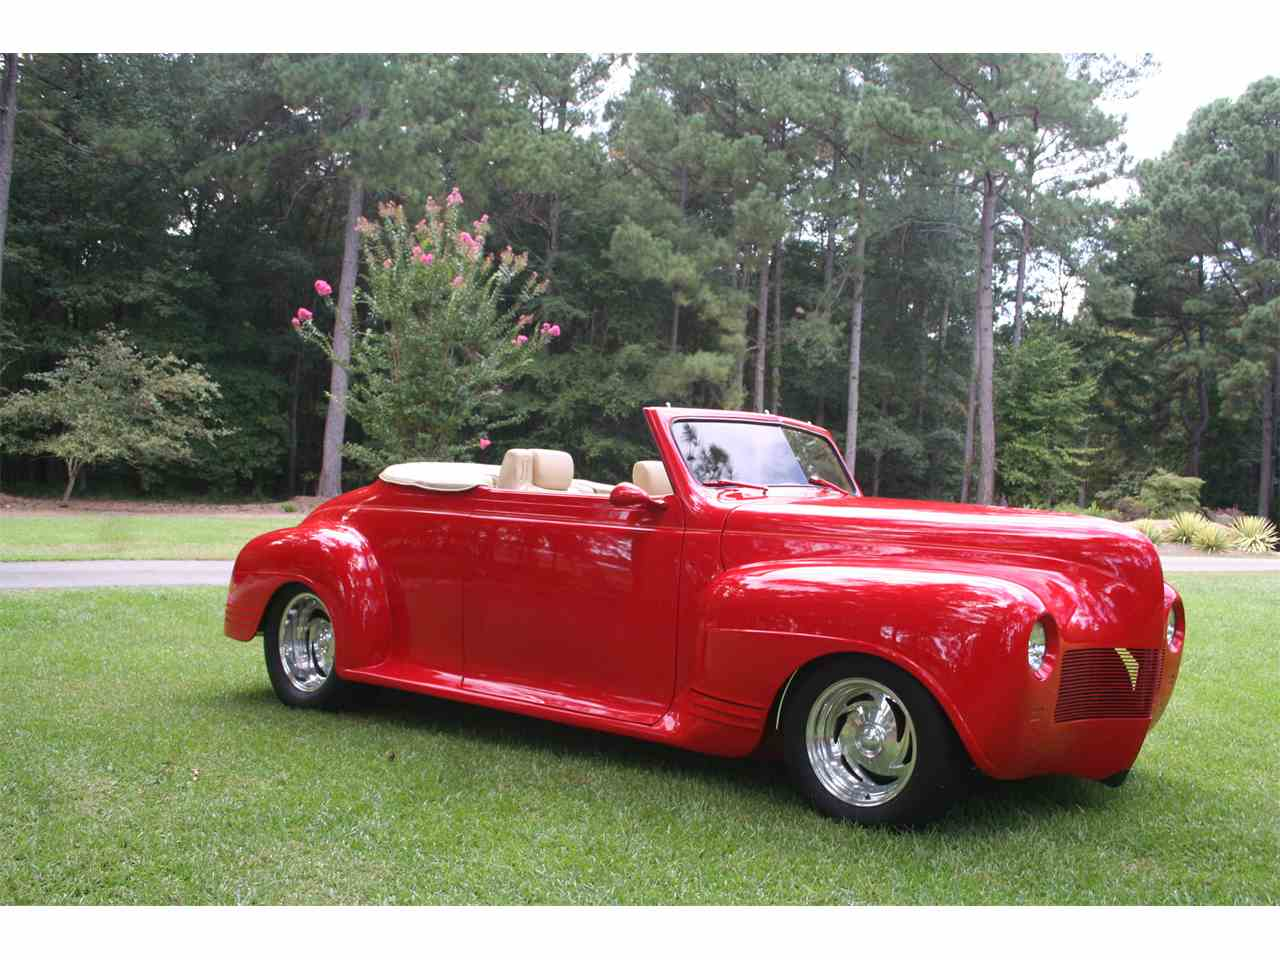 1941 Ford Coupe For Sale In Ga Plymouth 2 Dr Street R1941